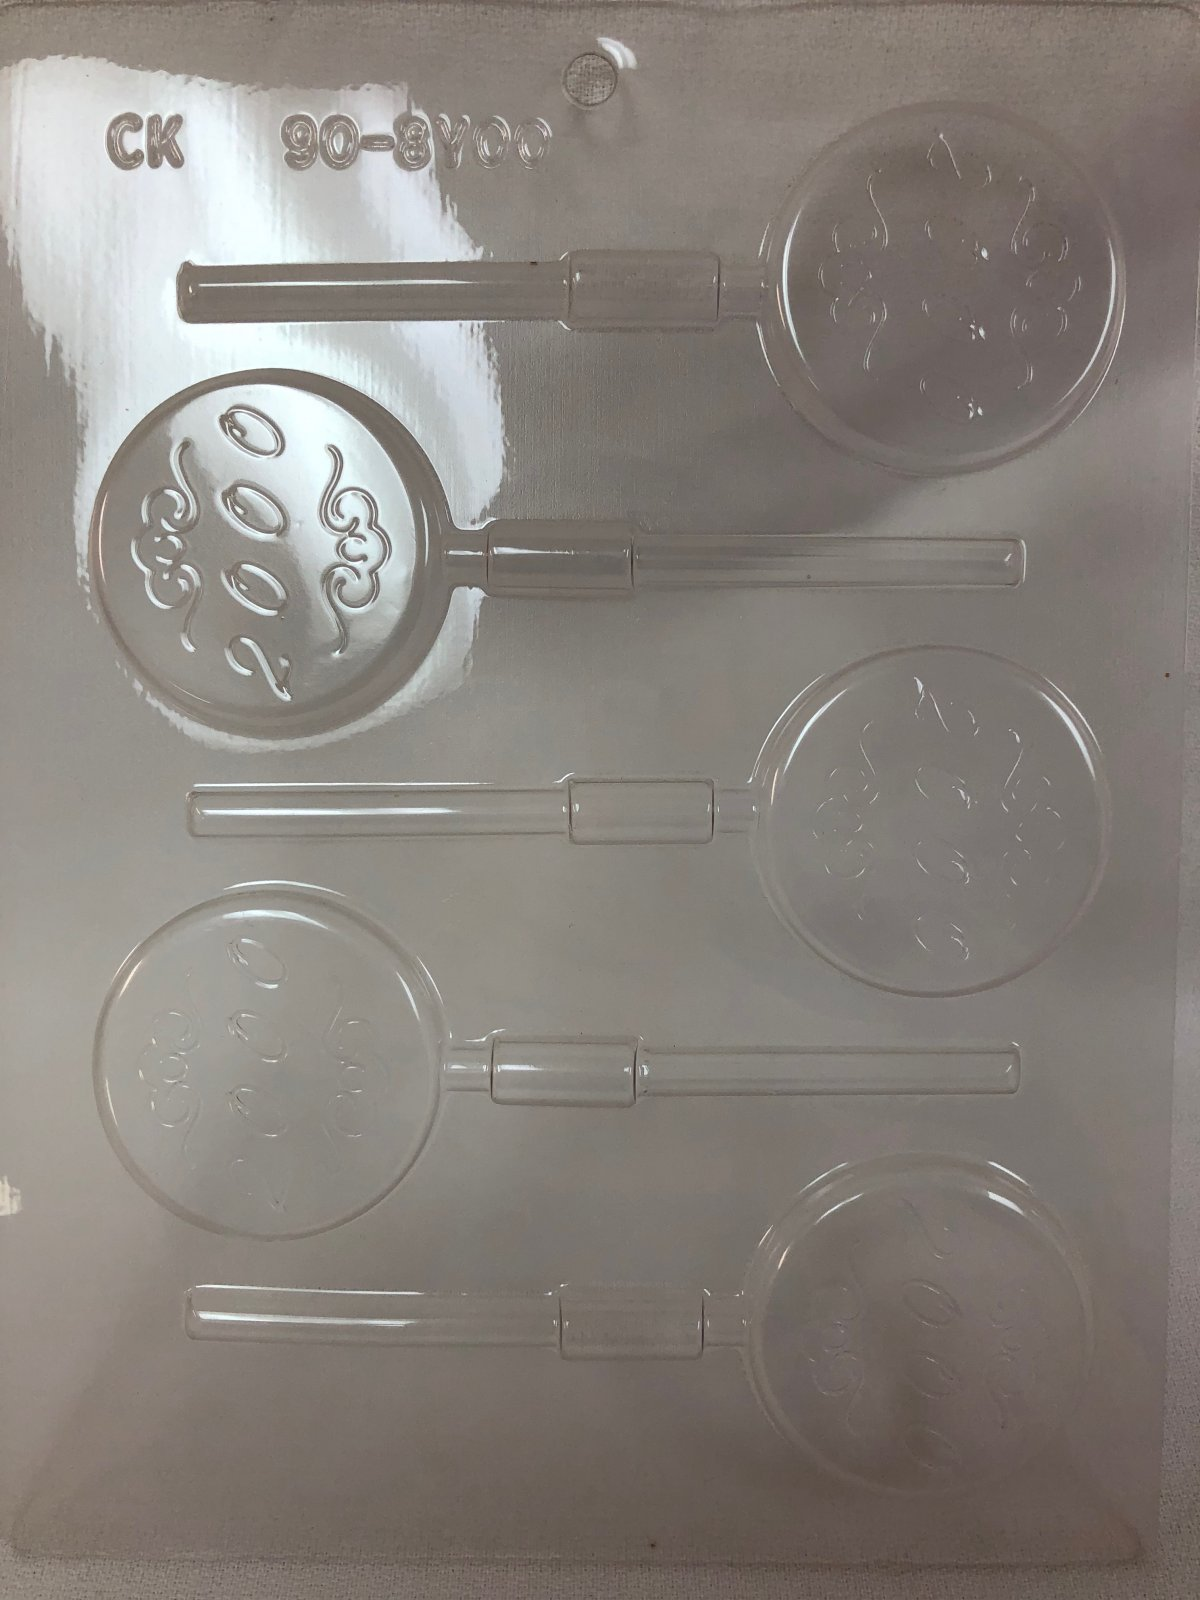 2000 Round Sucker Chocolate Mold